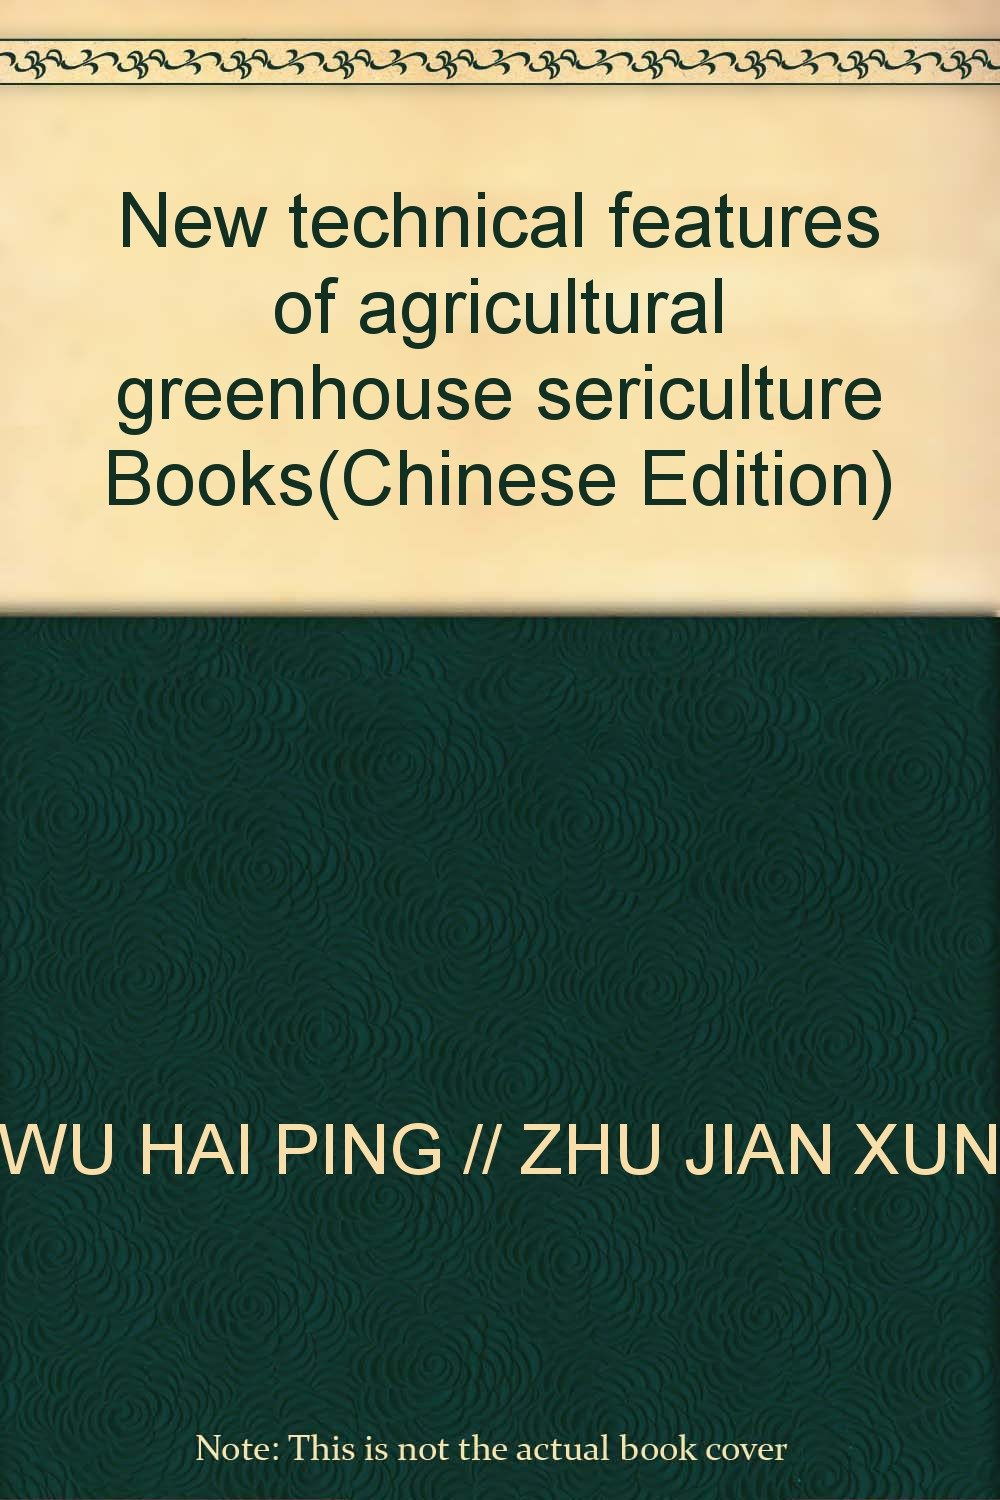 New technical features of agricultural greenhouse sericulture Books(Chinese Edition)